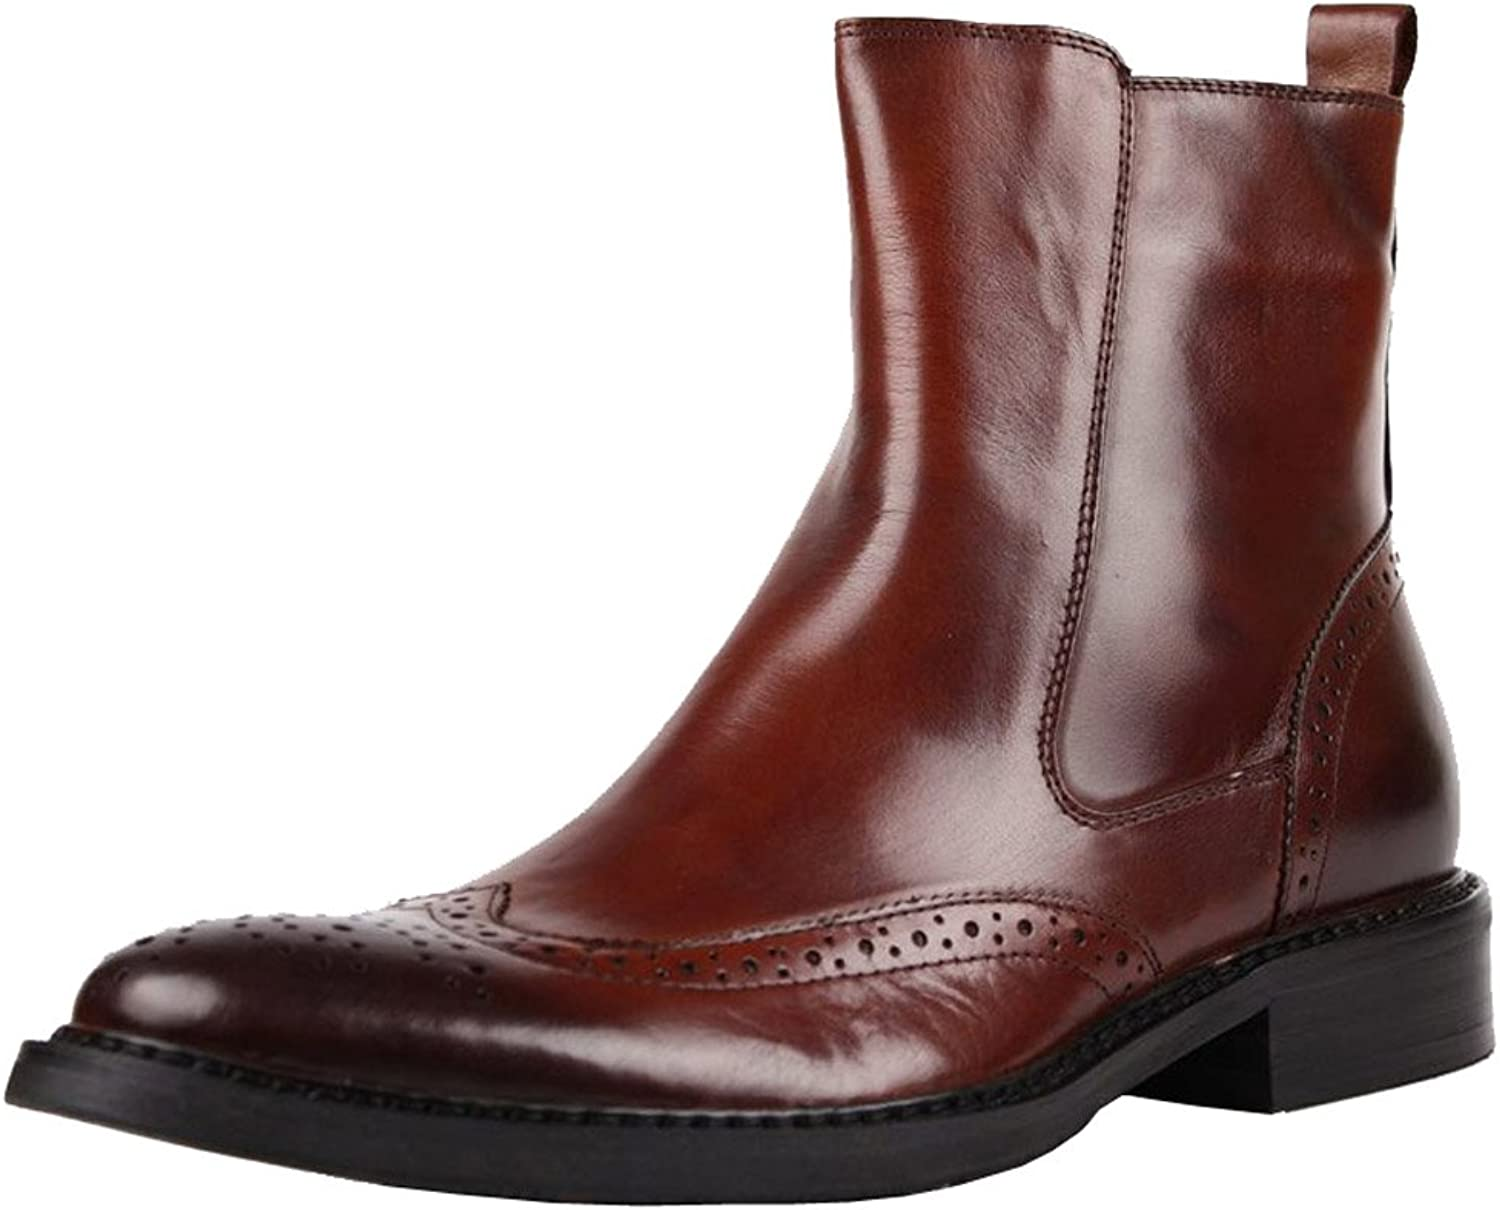 Jsix New Men's Real Leather Boots Brogues Side Zip Formal shoes